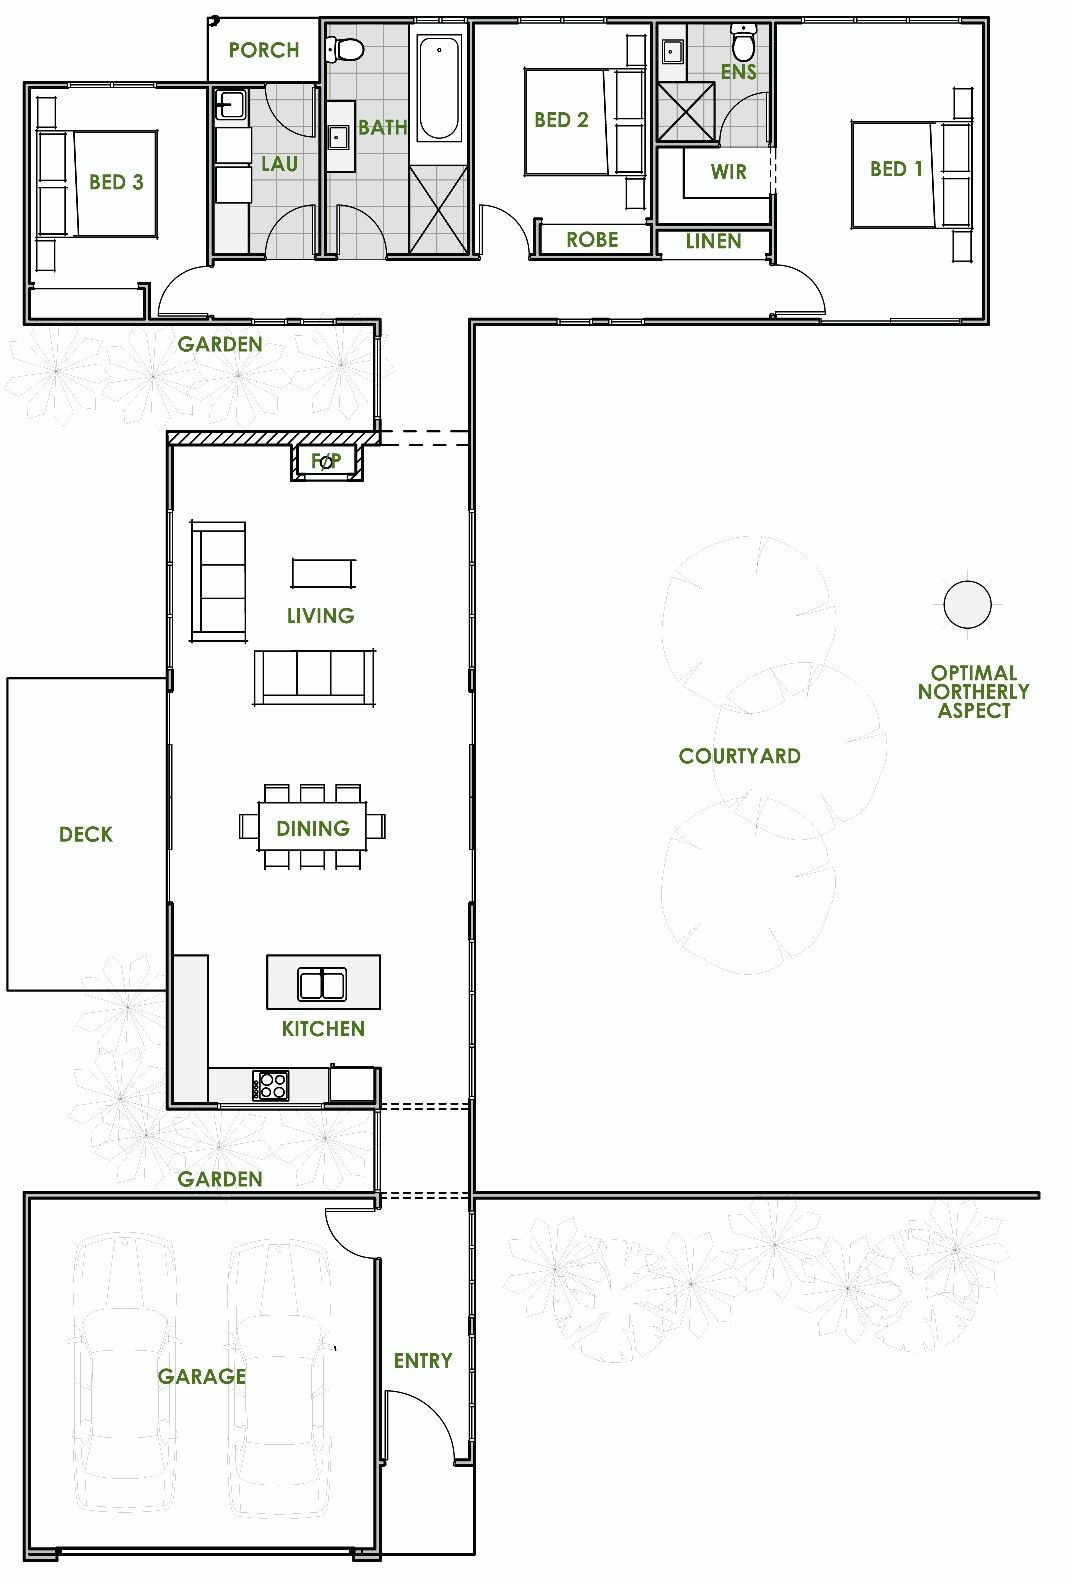 medium resolution of extra bedroom between b2 and bathroom